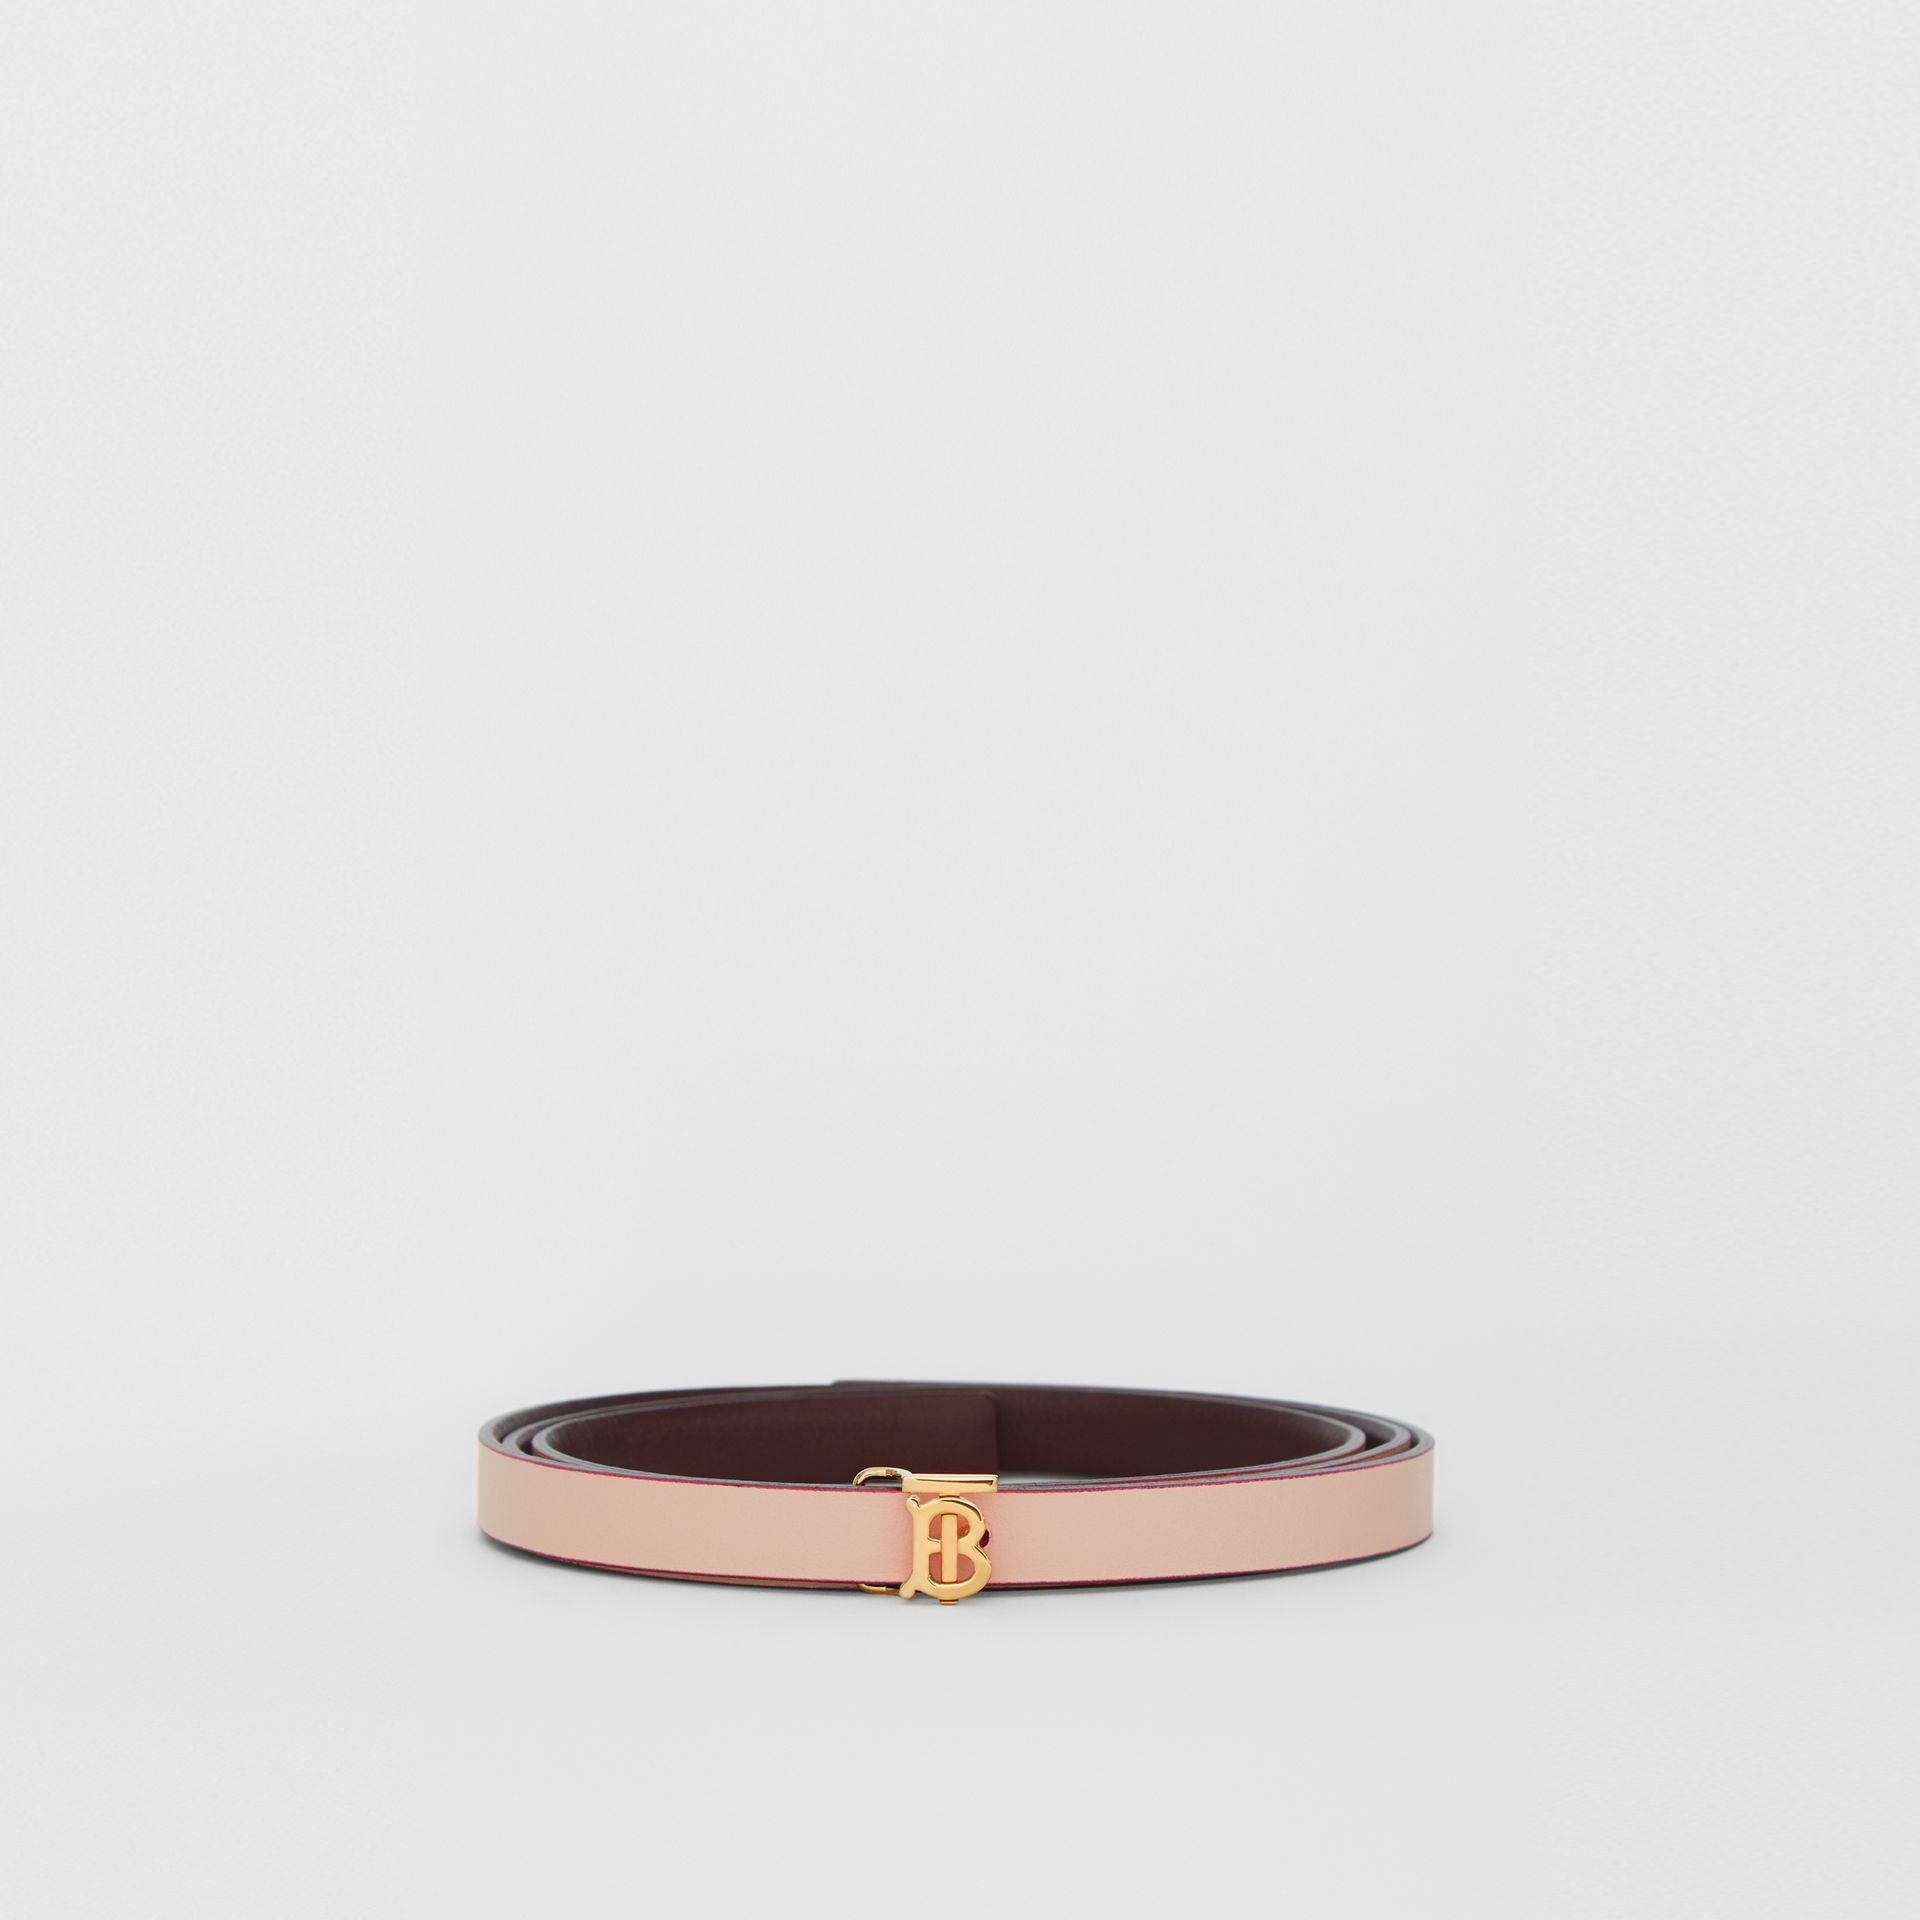 Reversible Monogram Motif Leather Wrap Belt in Oxblood/rose Beige - Women | Burberry - gallery image 6